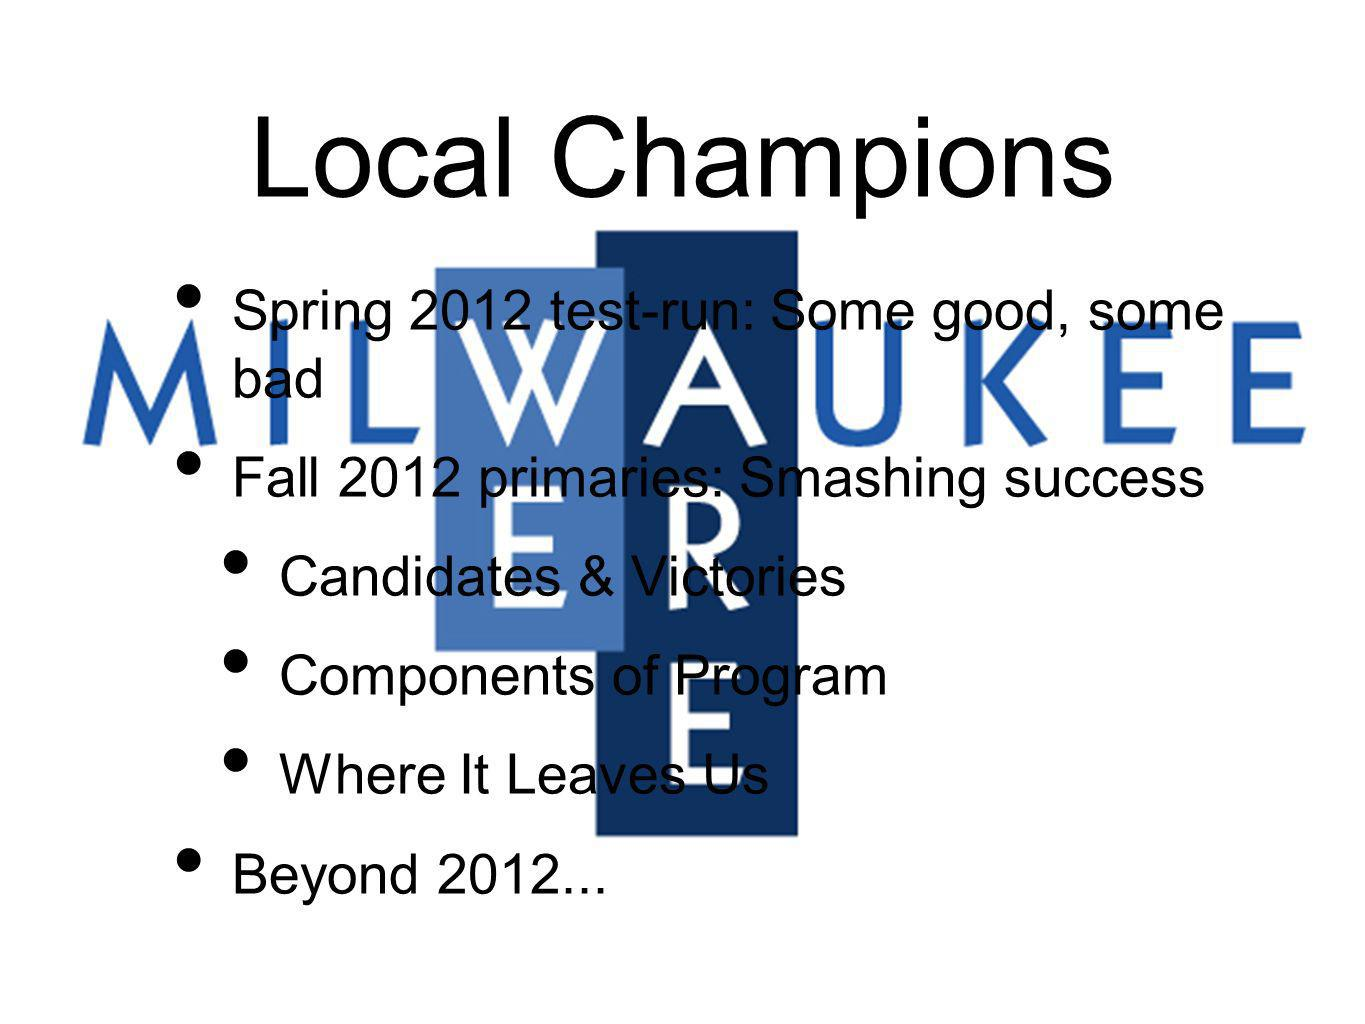 Local Champions Spring 2012 test-run: Some good, some bad Fall 2012 primaries: Smashing success Candidates & Victories Components of Program Where It Leaves Us Beyond 2012...